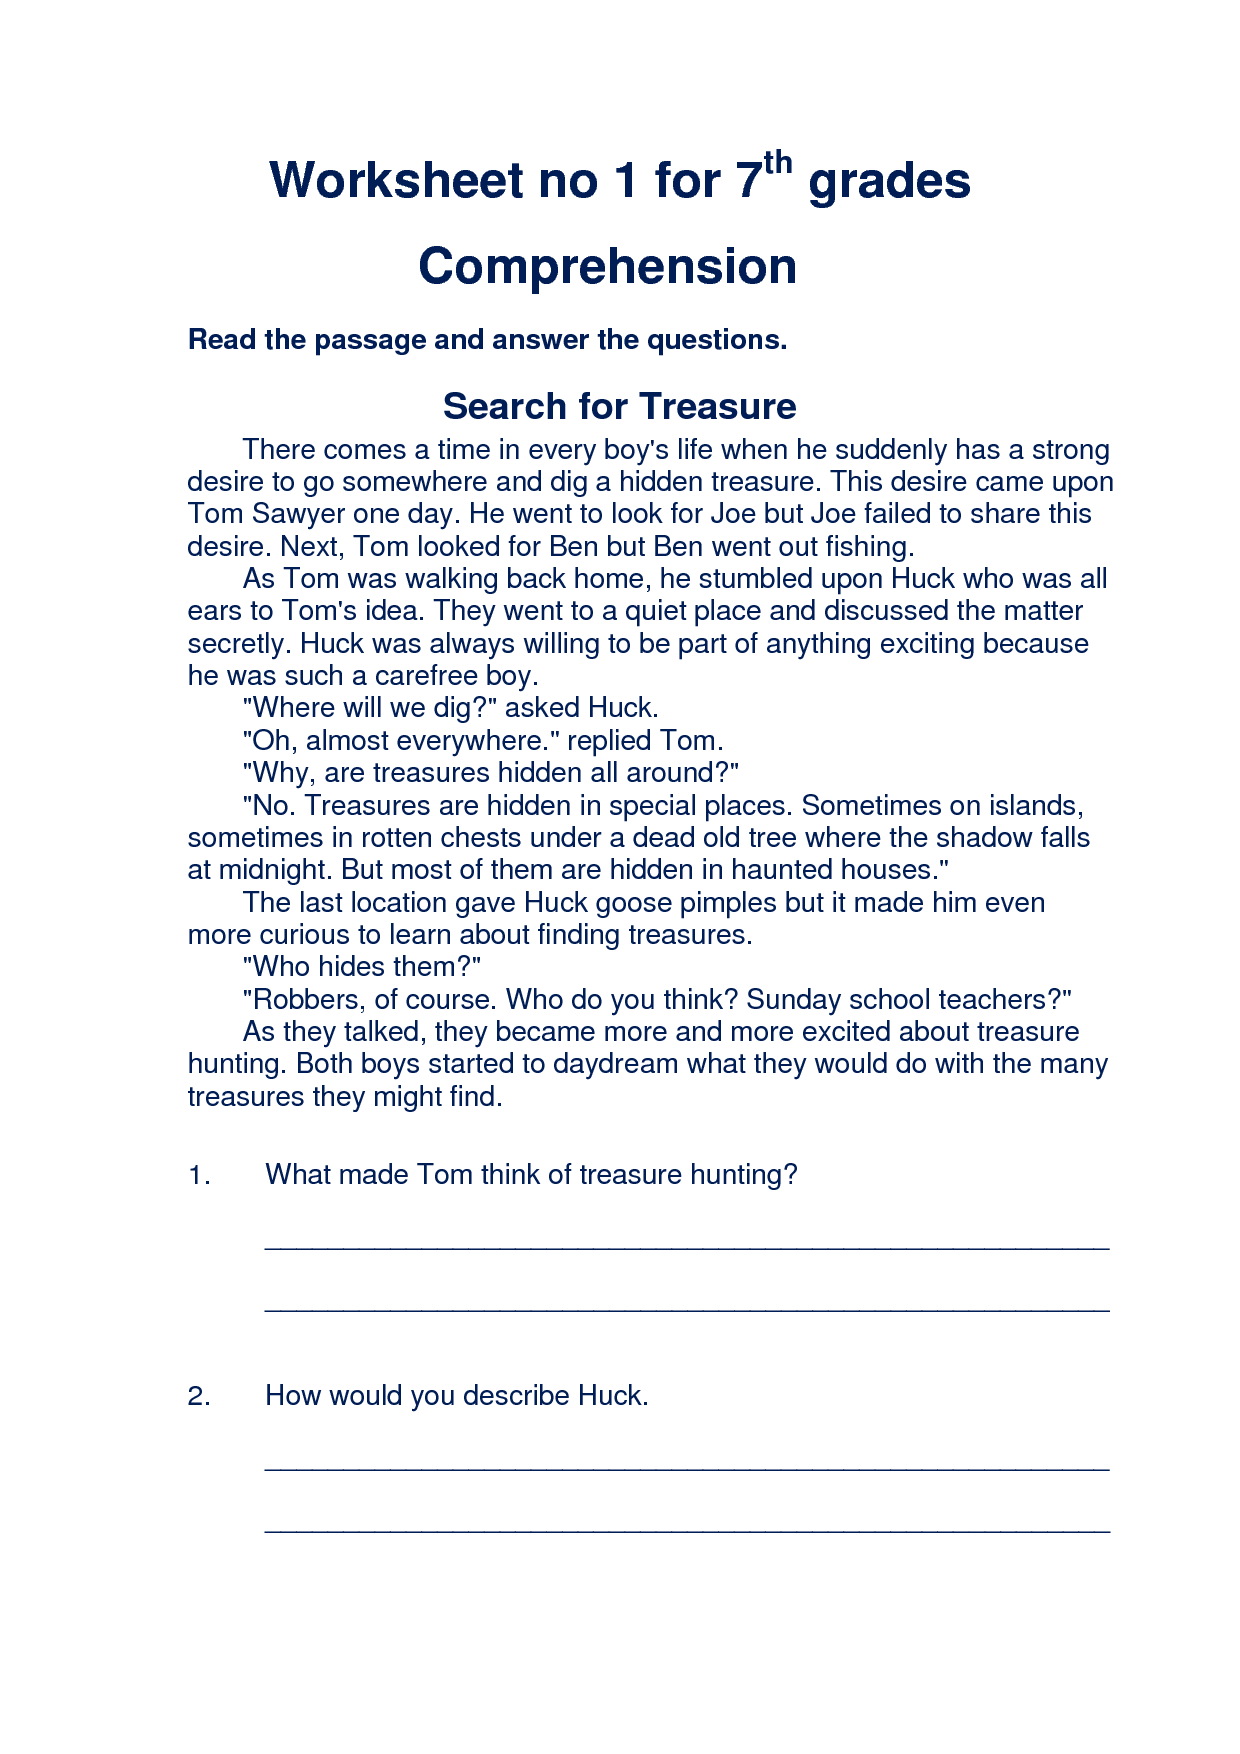 Worksheet 3rd Grade Reading Comprehension Practice comprehension practice test 2nd grade scalien reading scalien